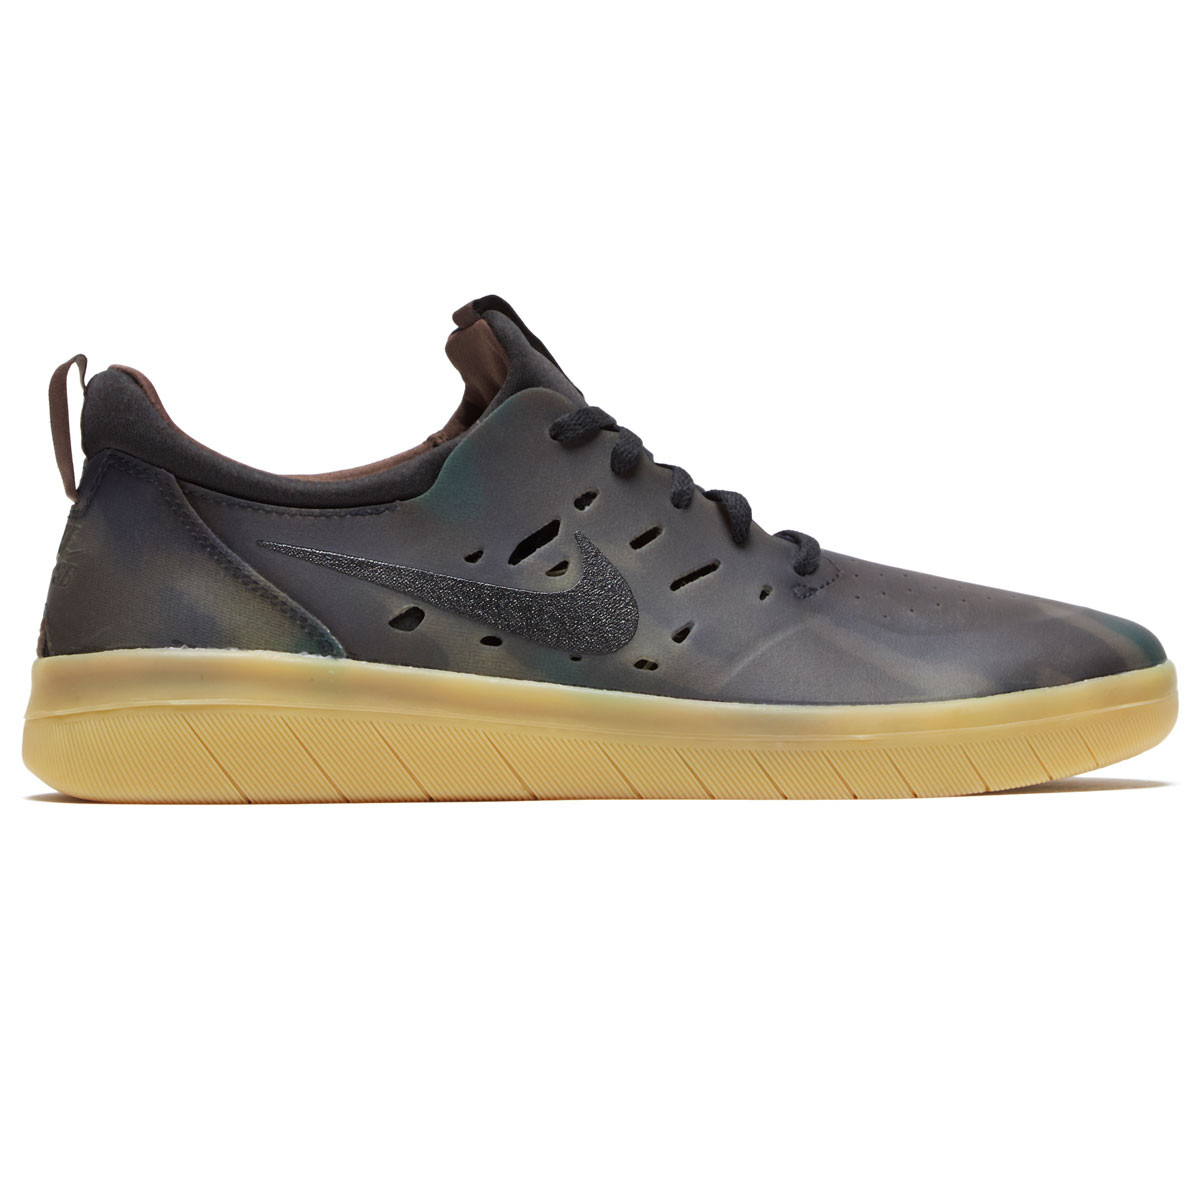 cheap for discount 1dd69 542b4 Nike SB Nyjah Free Premium Shoes - Multi Color Black Gum Light Brown